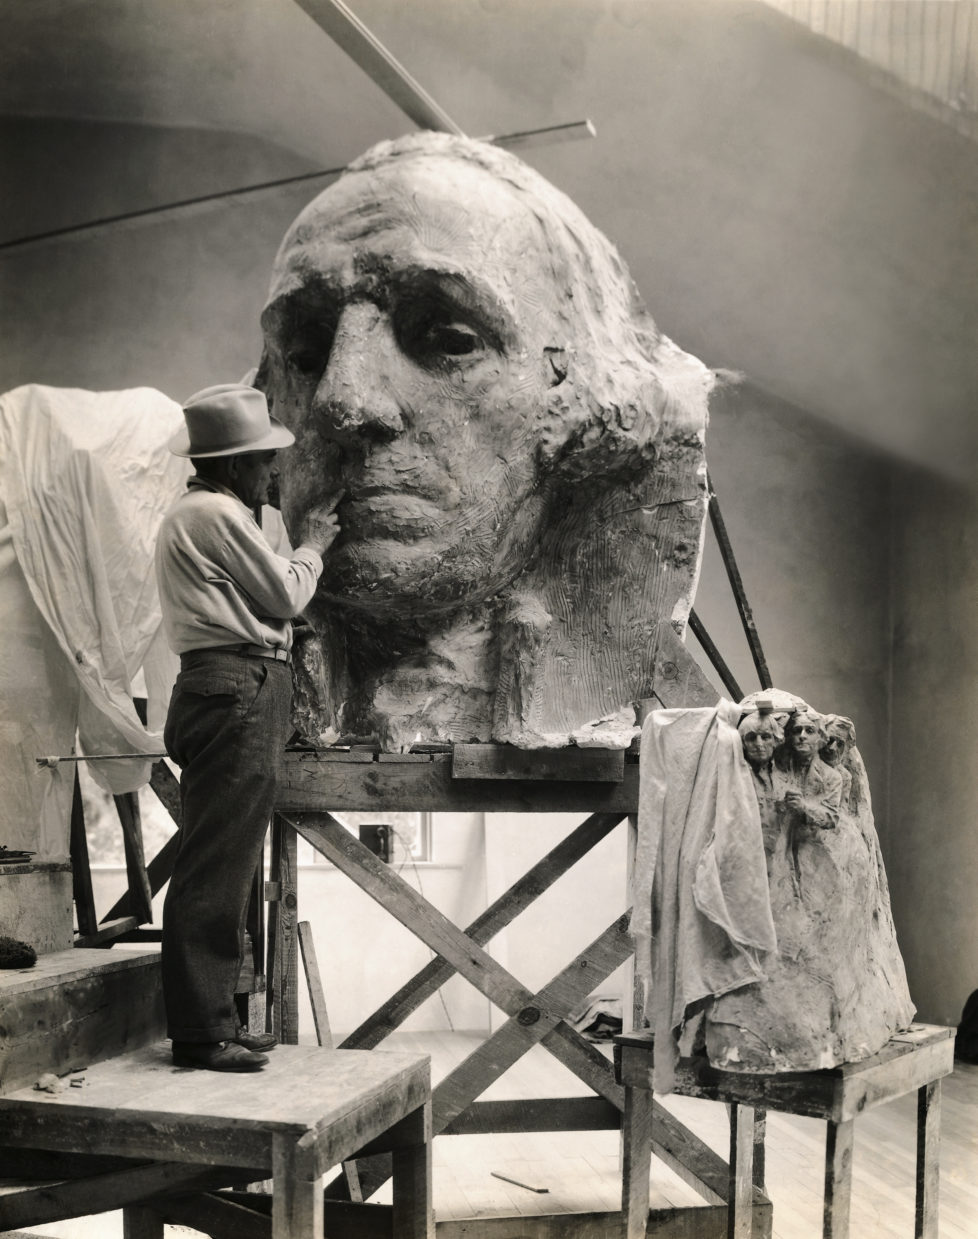 (Original Caption) Gutzon Borglum, America's famous sculptor, seen in his studio at Rushmore in the Black Hills of South Dakota, is working on the head of Washington. The small model of the heroic memorial is shown at right. The head of Washington is five stories high from chin to top. (Photo by George Rinhart/Corbis via Getty Images)